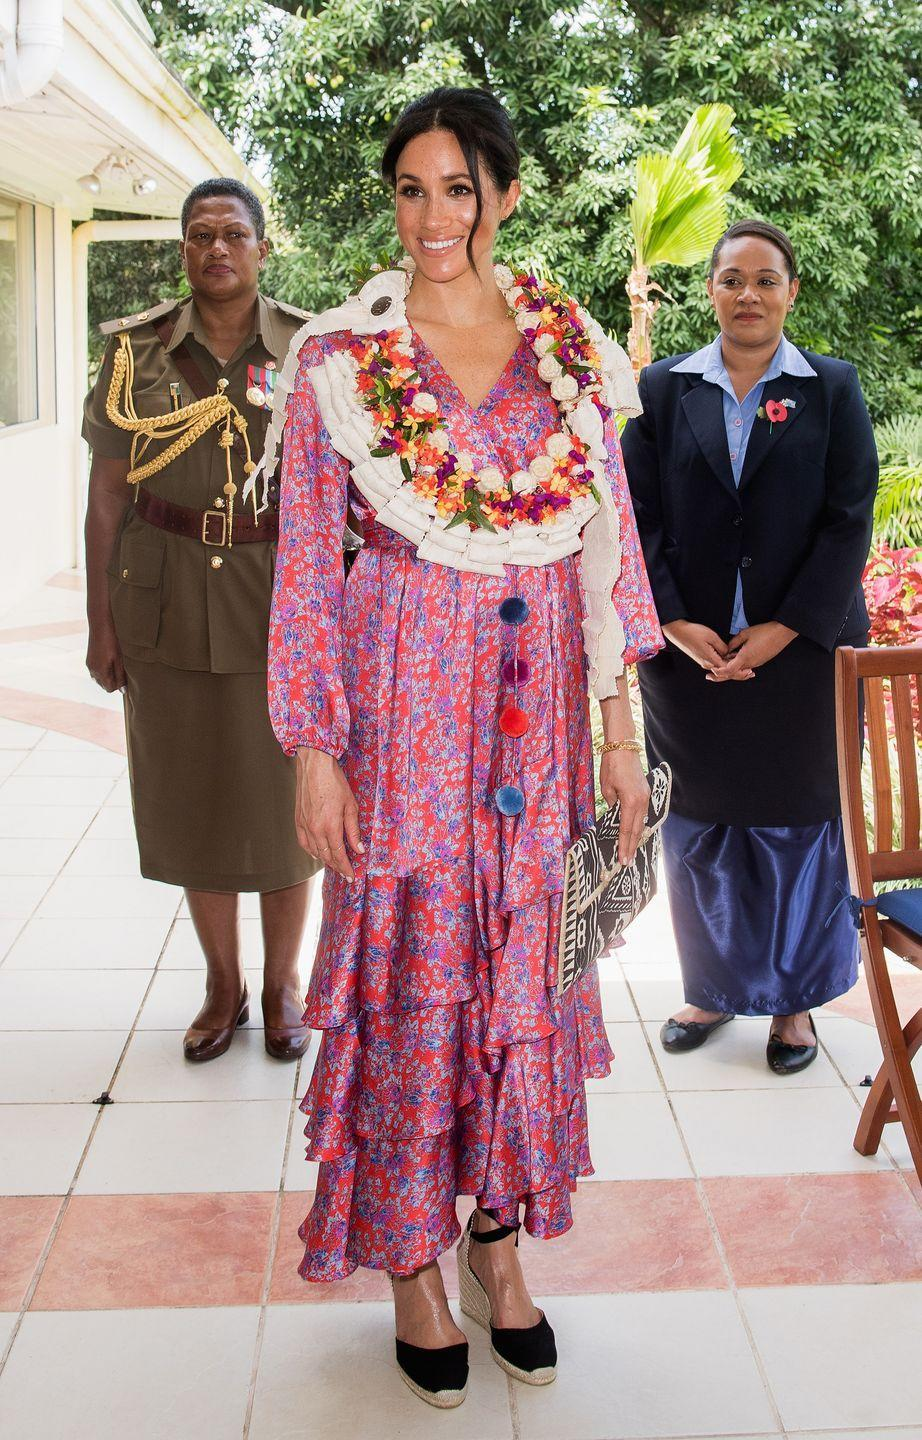 "<p>Meghan stepped out in Fiji <a href=""https://www.townandcountrymag.com/society/tradition/a24112168/meghan-markle-style-pink-dress-figue-fiji/"" rel=""nofollow noopener"" target=""_blank"" data-ylk=""slk:wearing a printed pink dress"" class=""link rapid-noclick-resp"">wearing a printed pink dress</a> by Figue. The Duchess was given <a href=""https://www.townandcountrymag.com/society/tradition/g24109428/prince-harry-meghan-markle-fiji-royal-tour-day-2-photos/"" rel=""nofollow noopener"" target=""_blank"" data-ylk=""slk:a floral garland"" class=""link rapid-noclick-resp"">a floral garland</a> during the visit. </p>"